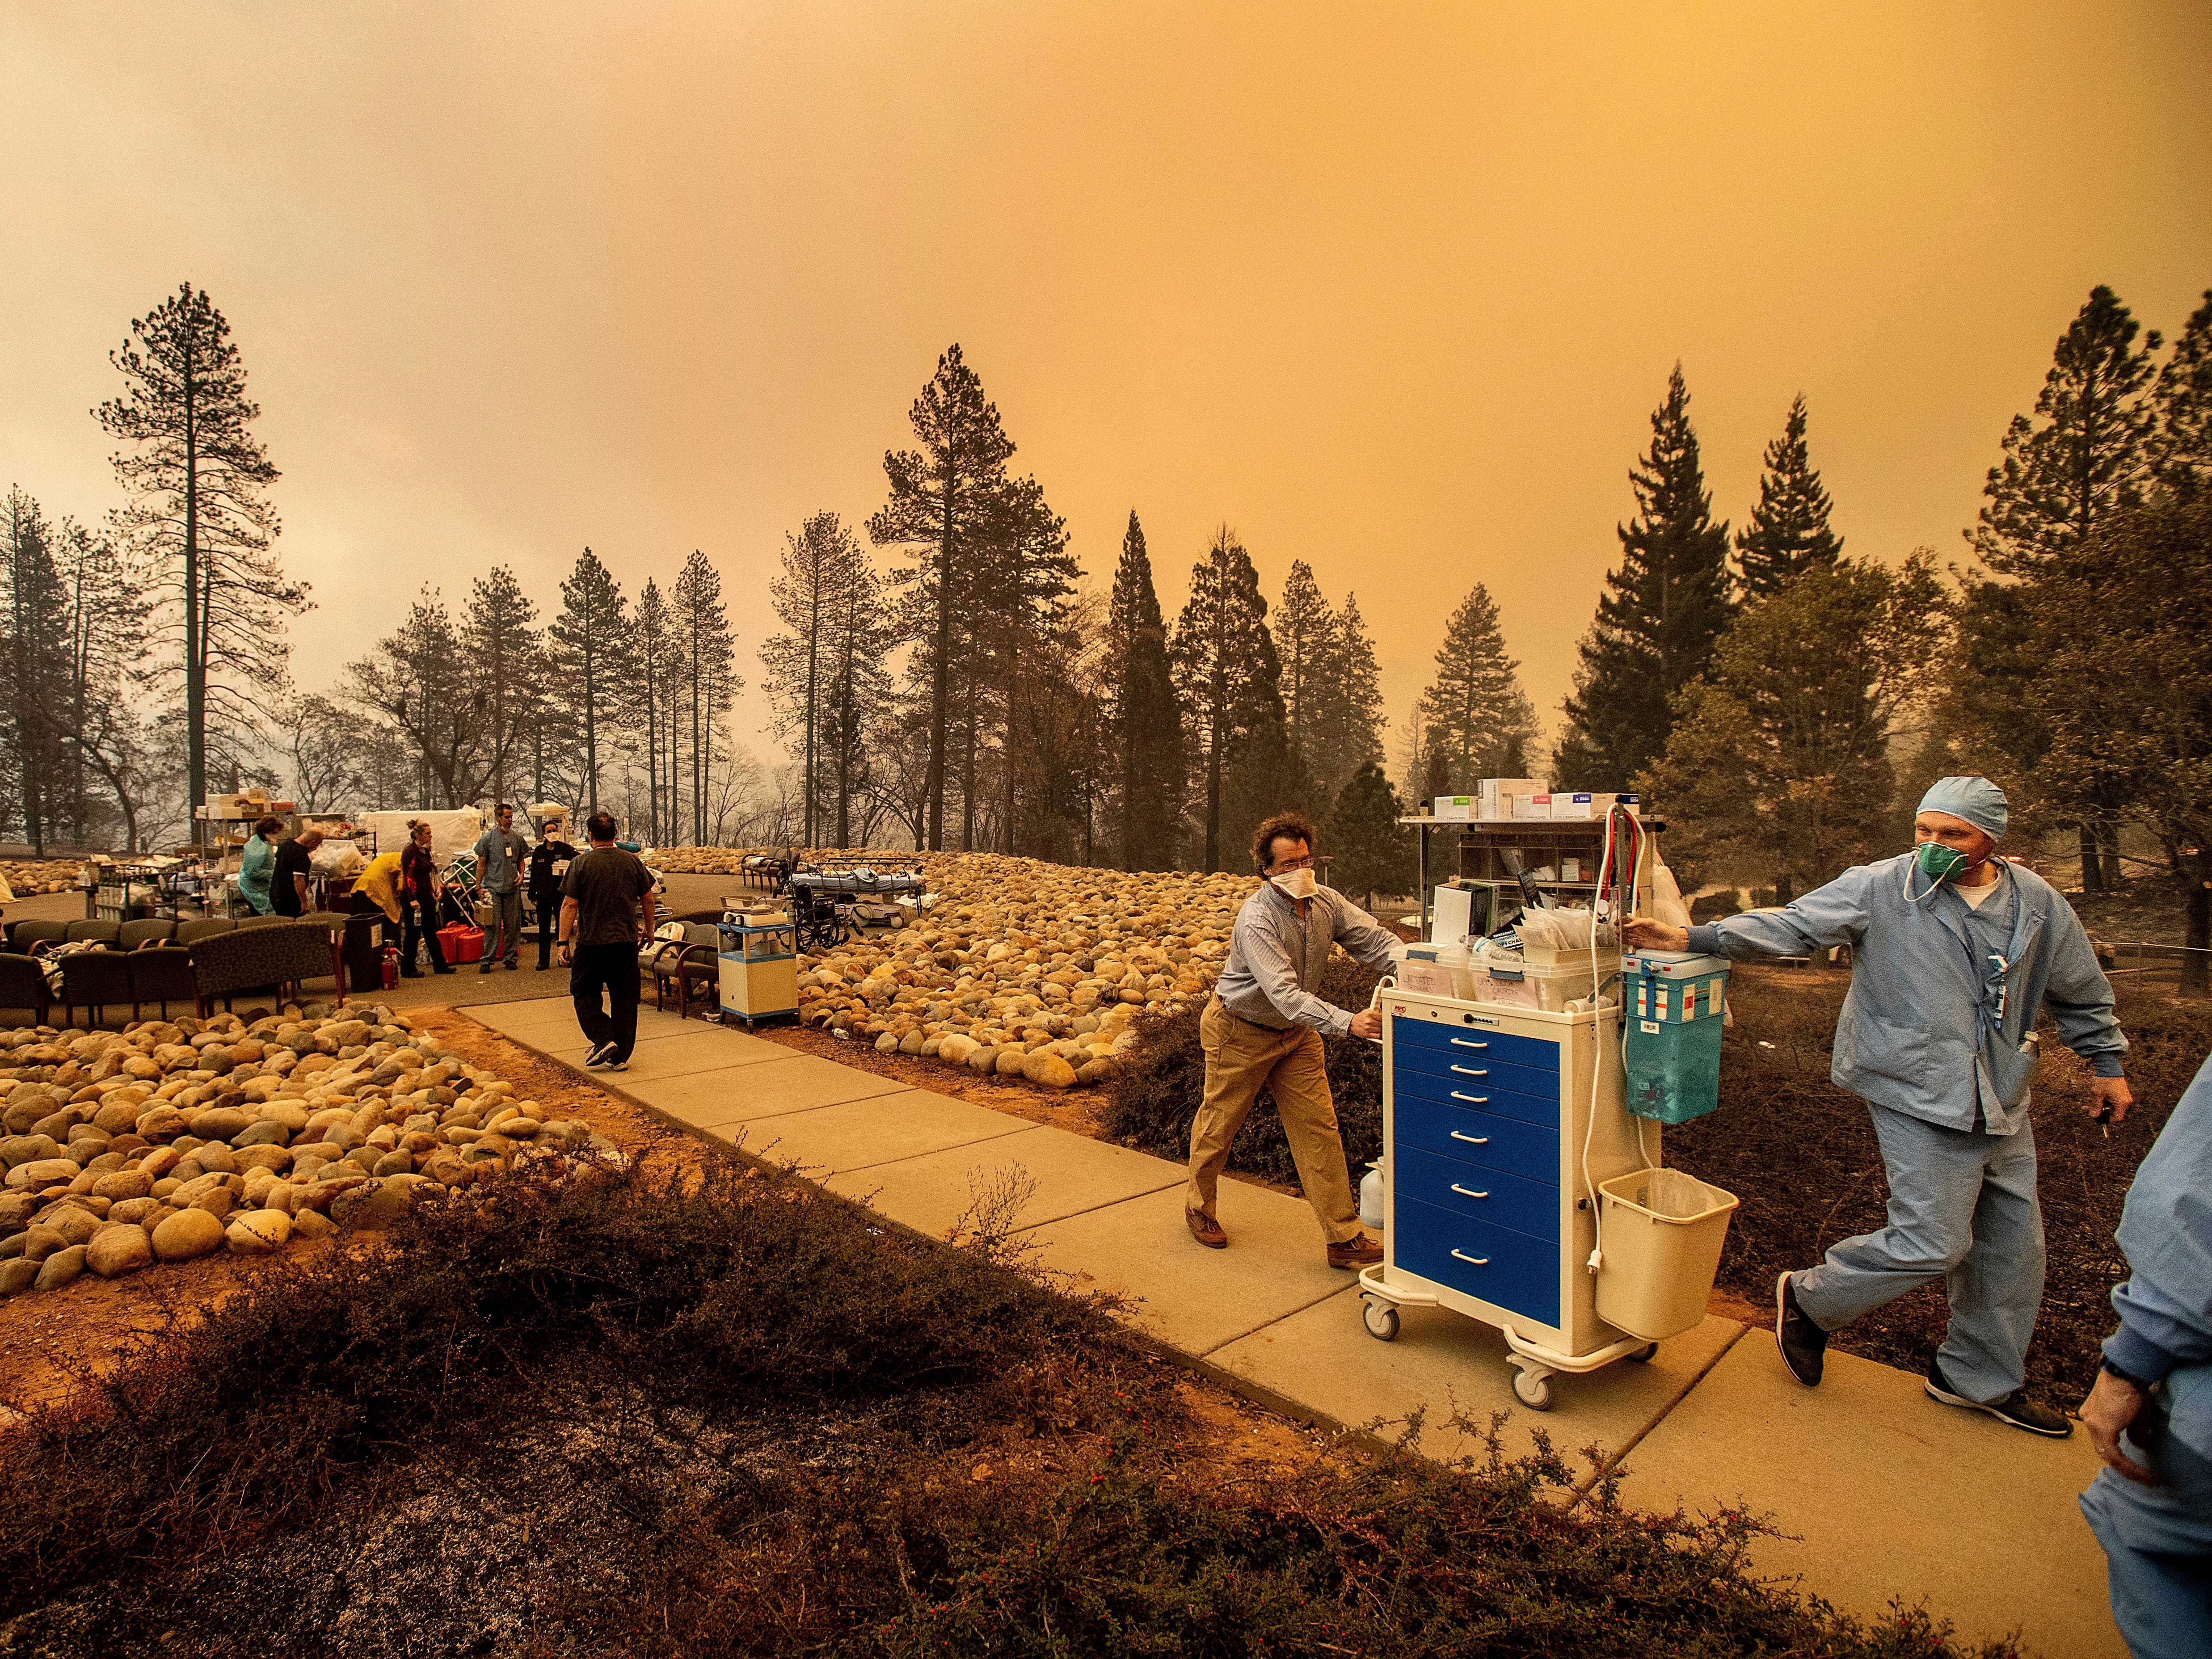 Medical workers move equipment from a makeshift emergency room while the Feather River Hospital burns as the Camp Fire rages through Paradise, Calif., on Nov. 8, 2018.